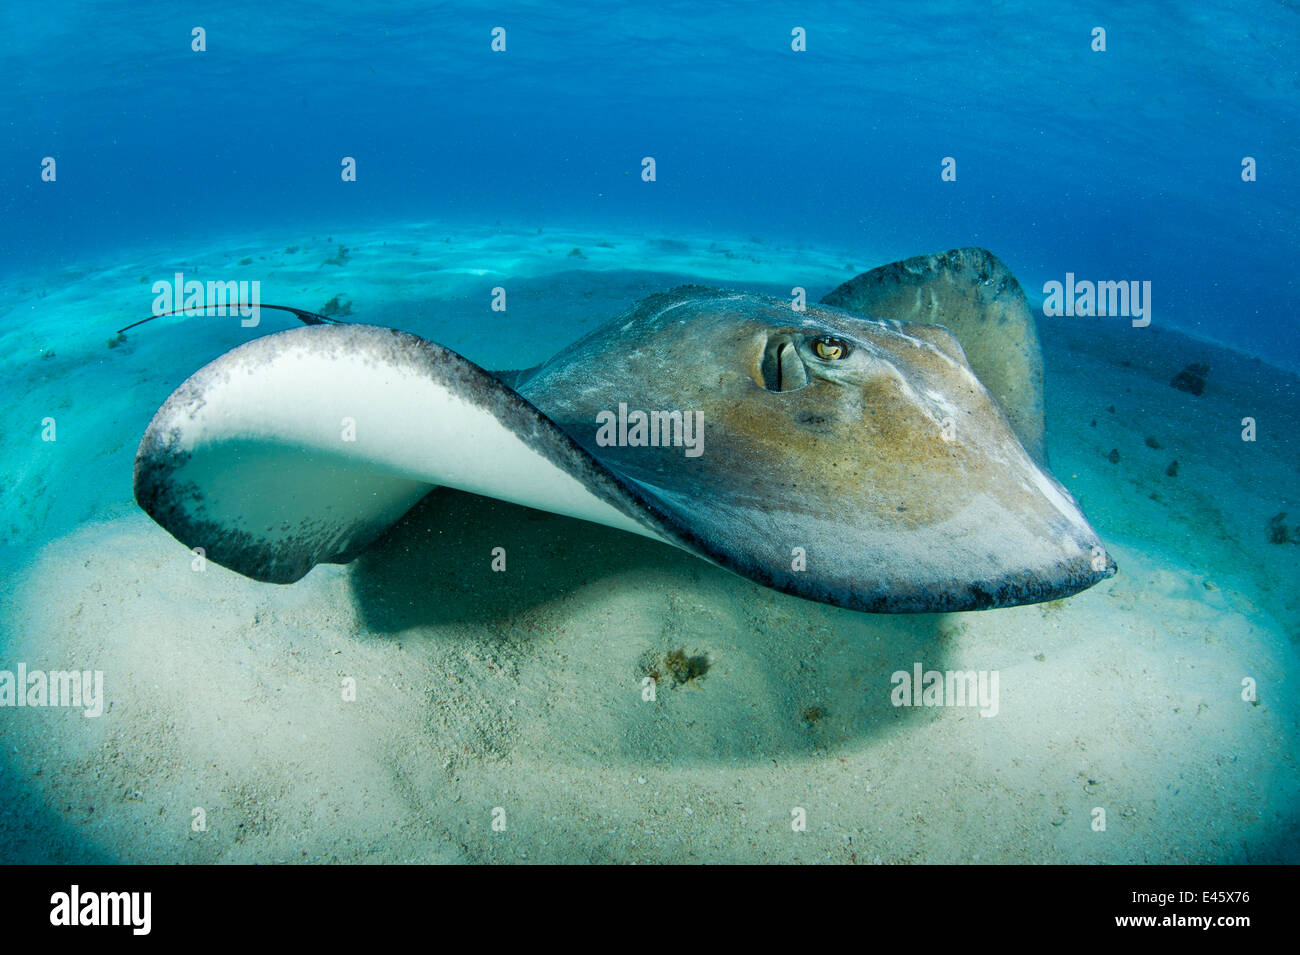 Southern stingray (Dasyatis americana) swimming over seabed, Grand Cayman, Cayman Islands. British West Indies, - Stock Image